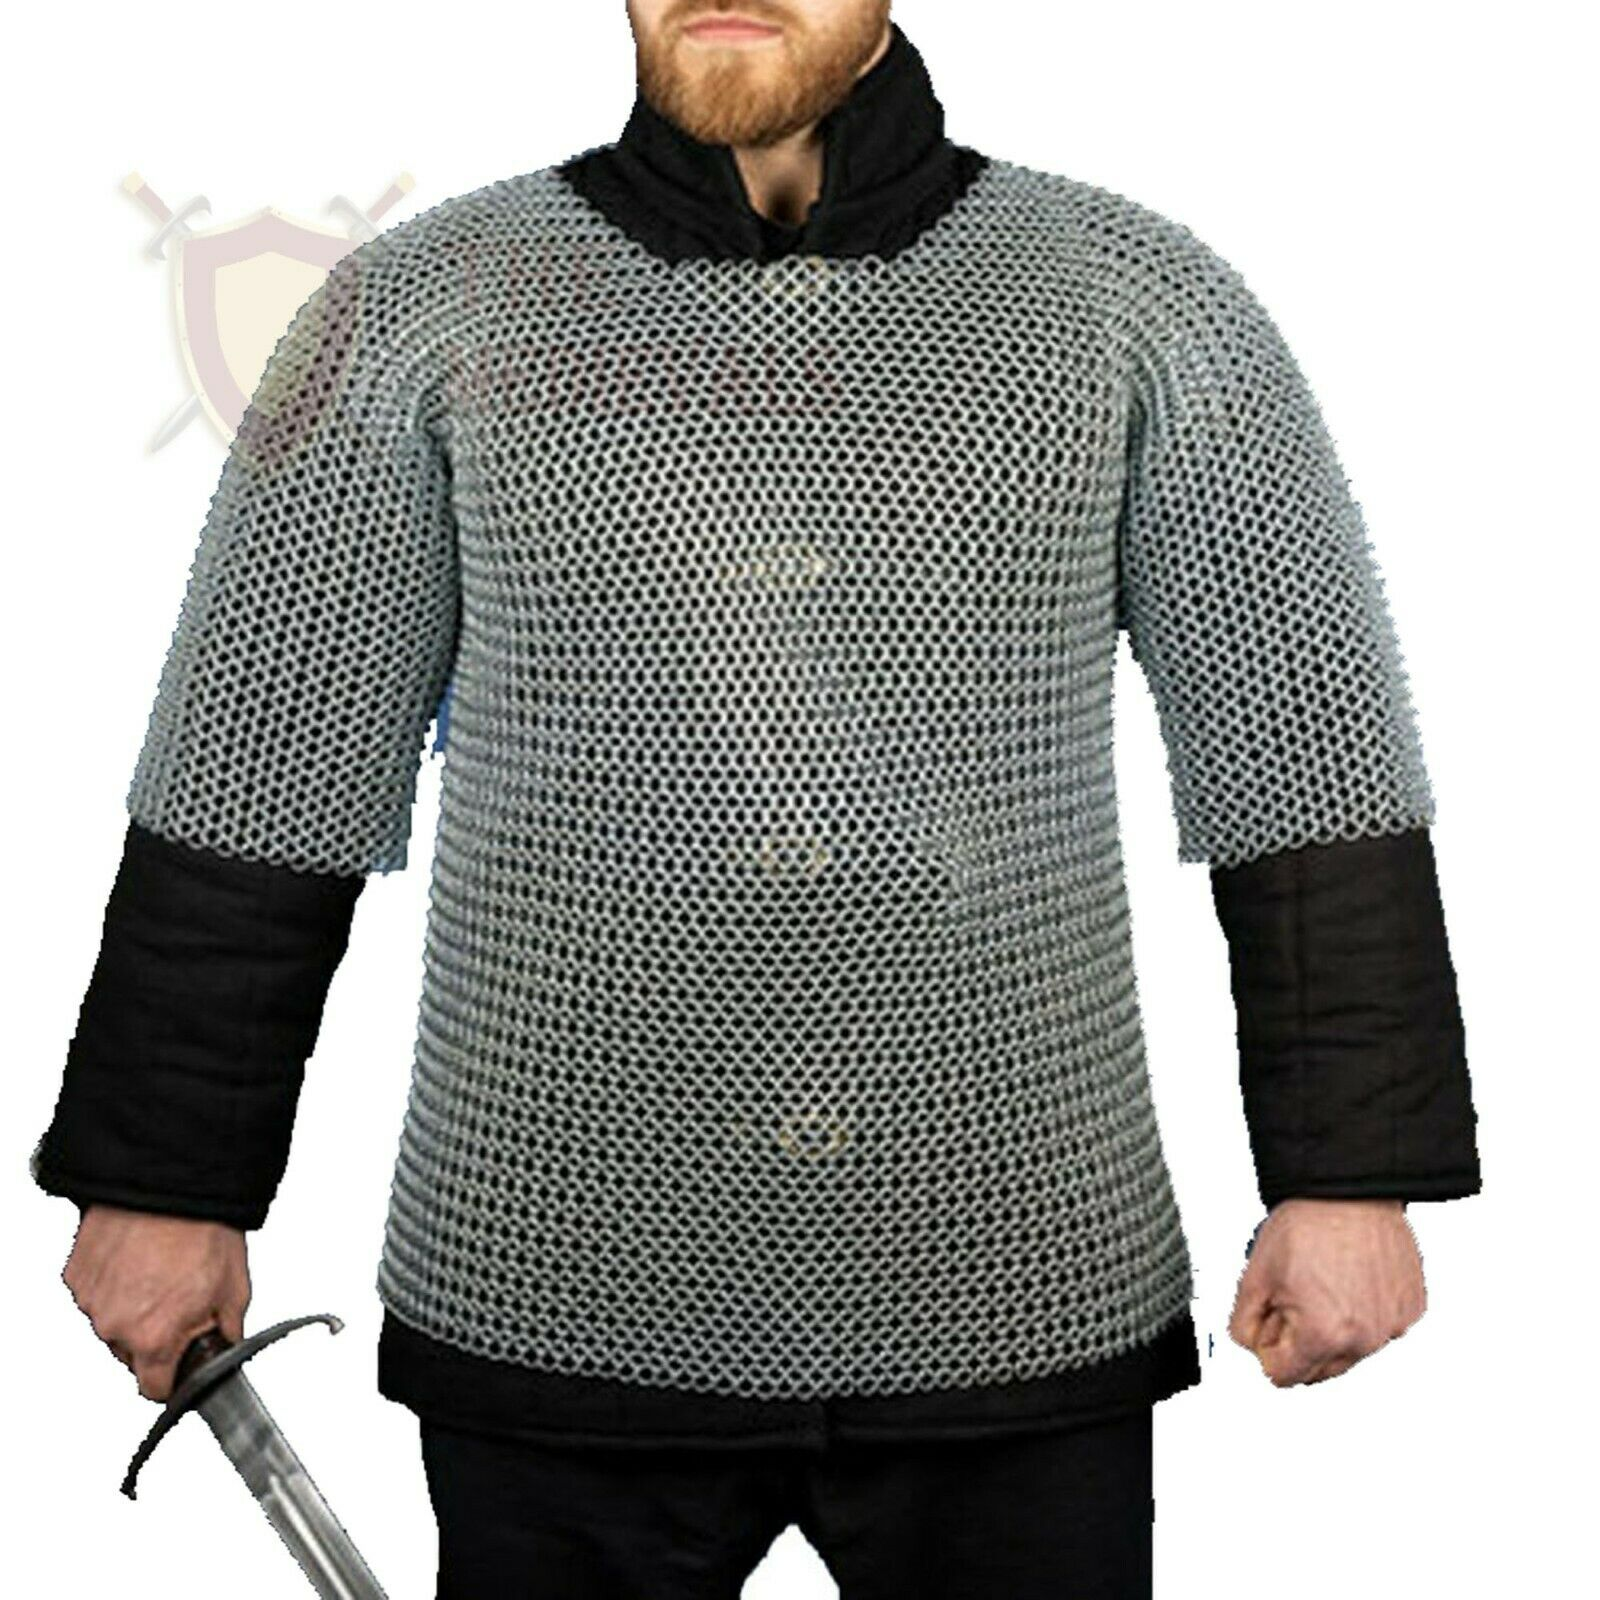 THE MEDIEVALS Chainmail Haubergeon Half Sleeve Shirt Mild Steel 10 MM ID Butted